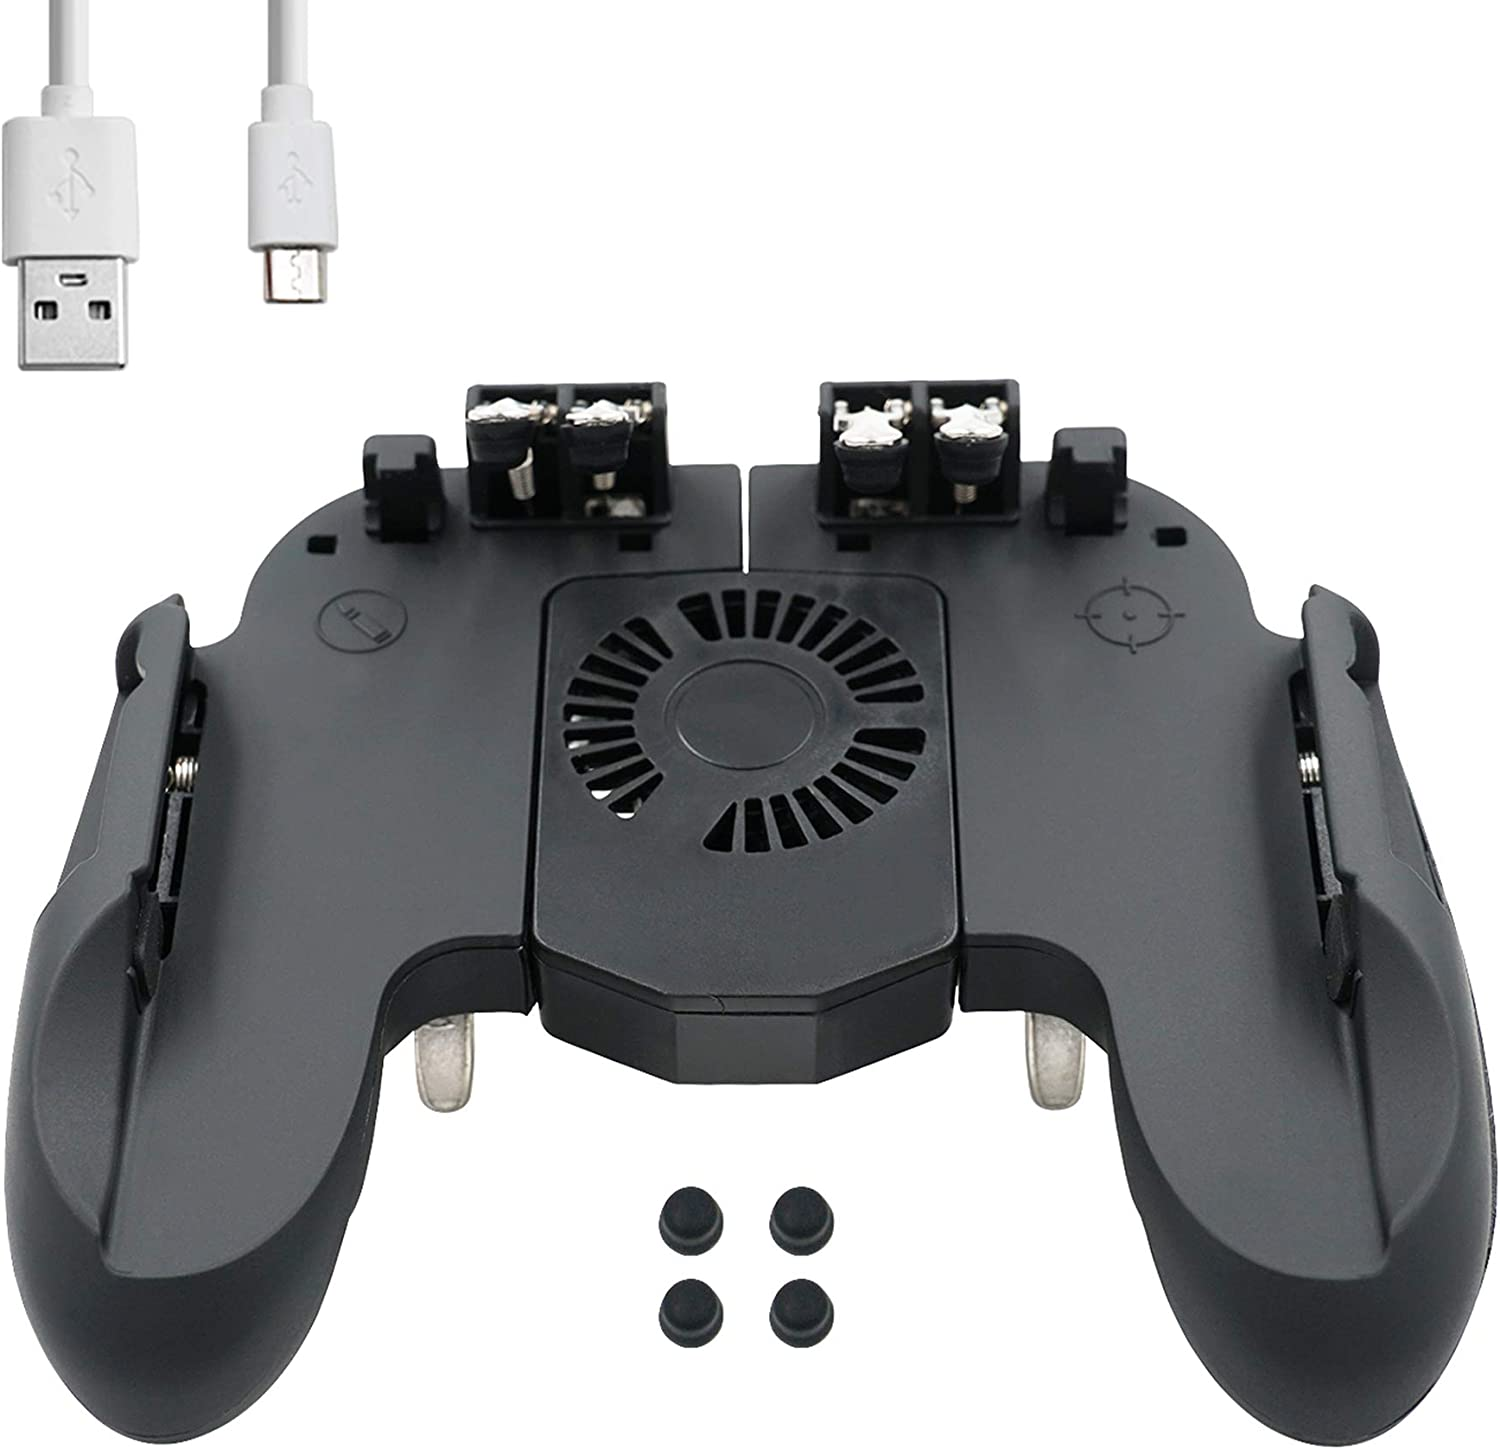 Mcbazel H9 Six Finger PUBG Game Controller with Cooling Fan for iOS Android Mobile Phone – Black